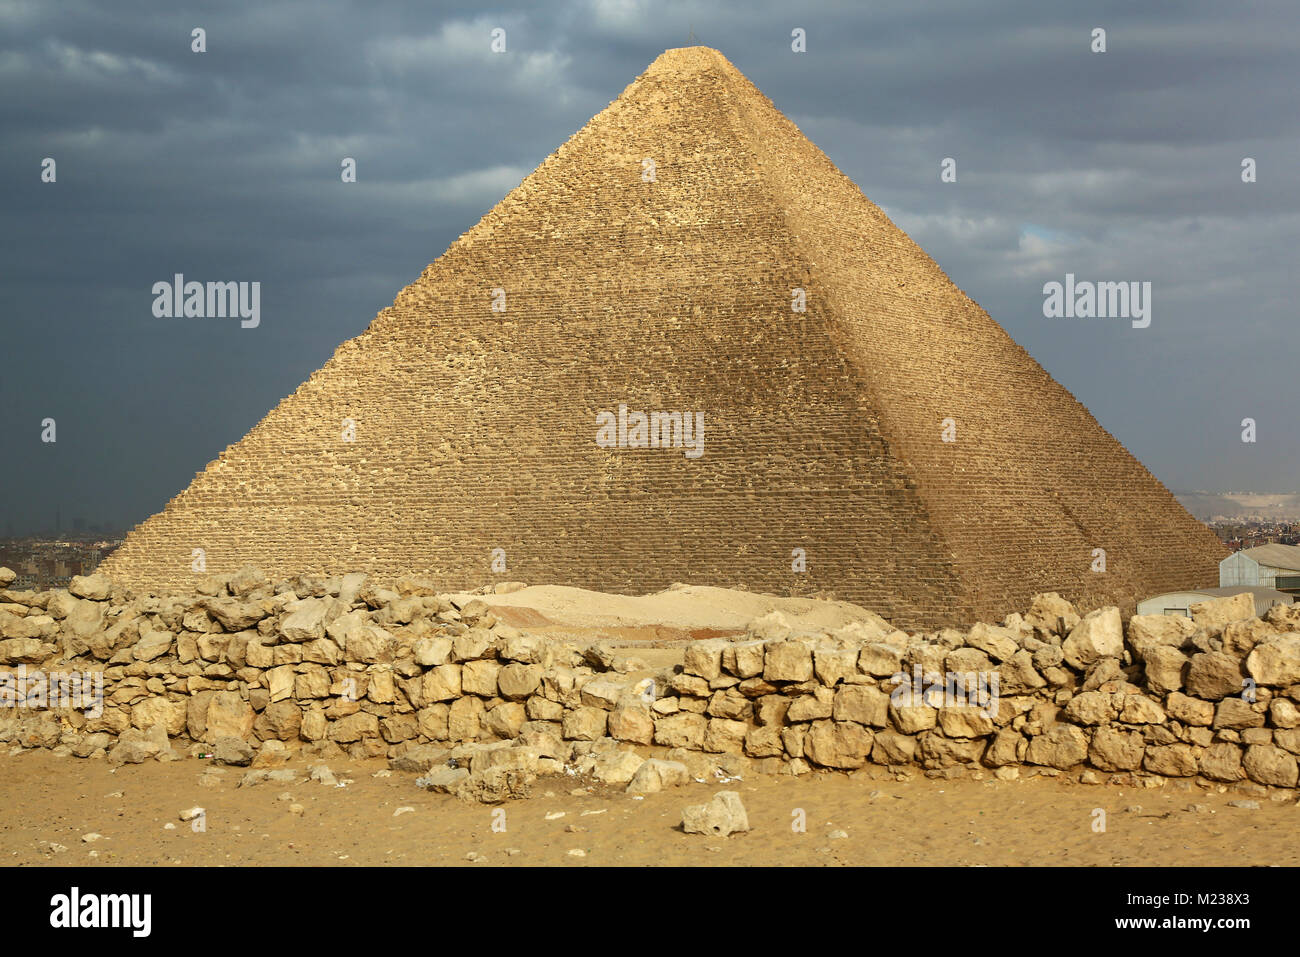 The Great Pyramid of Khufu (or Cheops) on the Giza Plateau, Cairo, Egypt - Stock Image